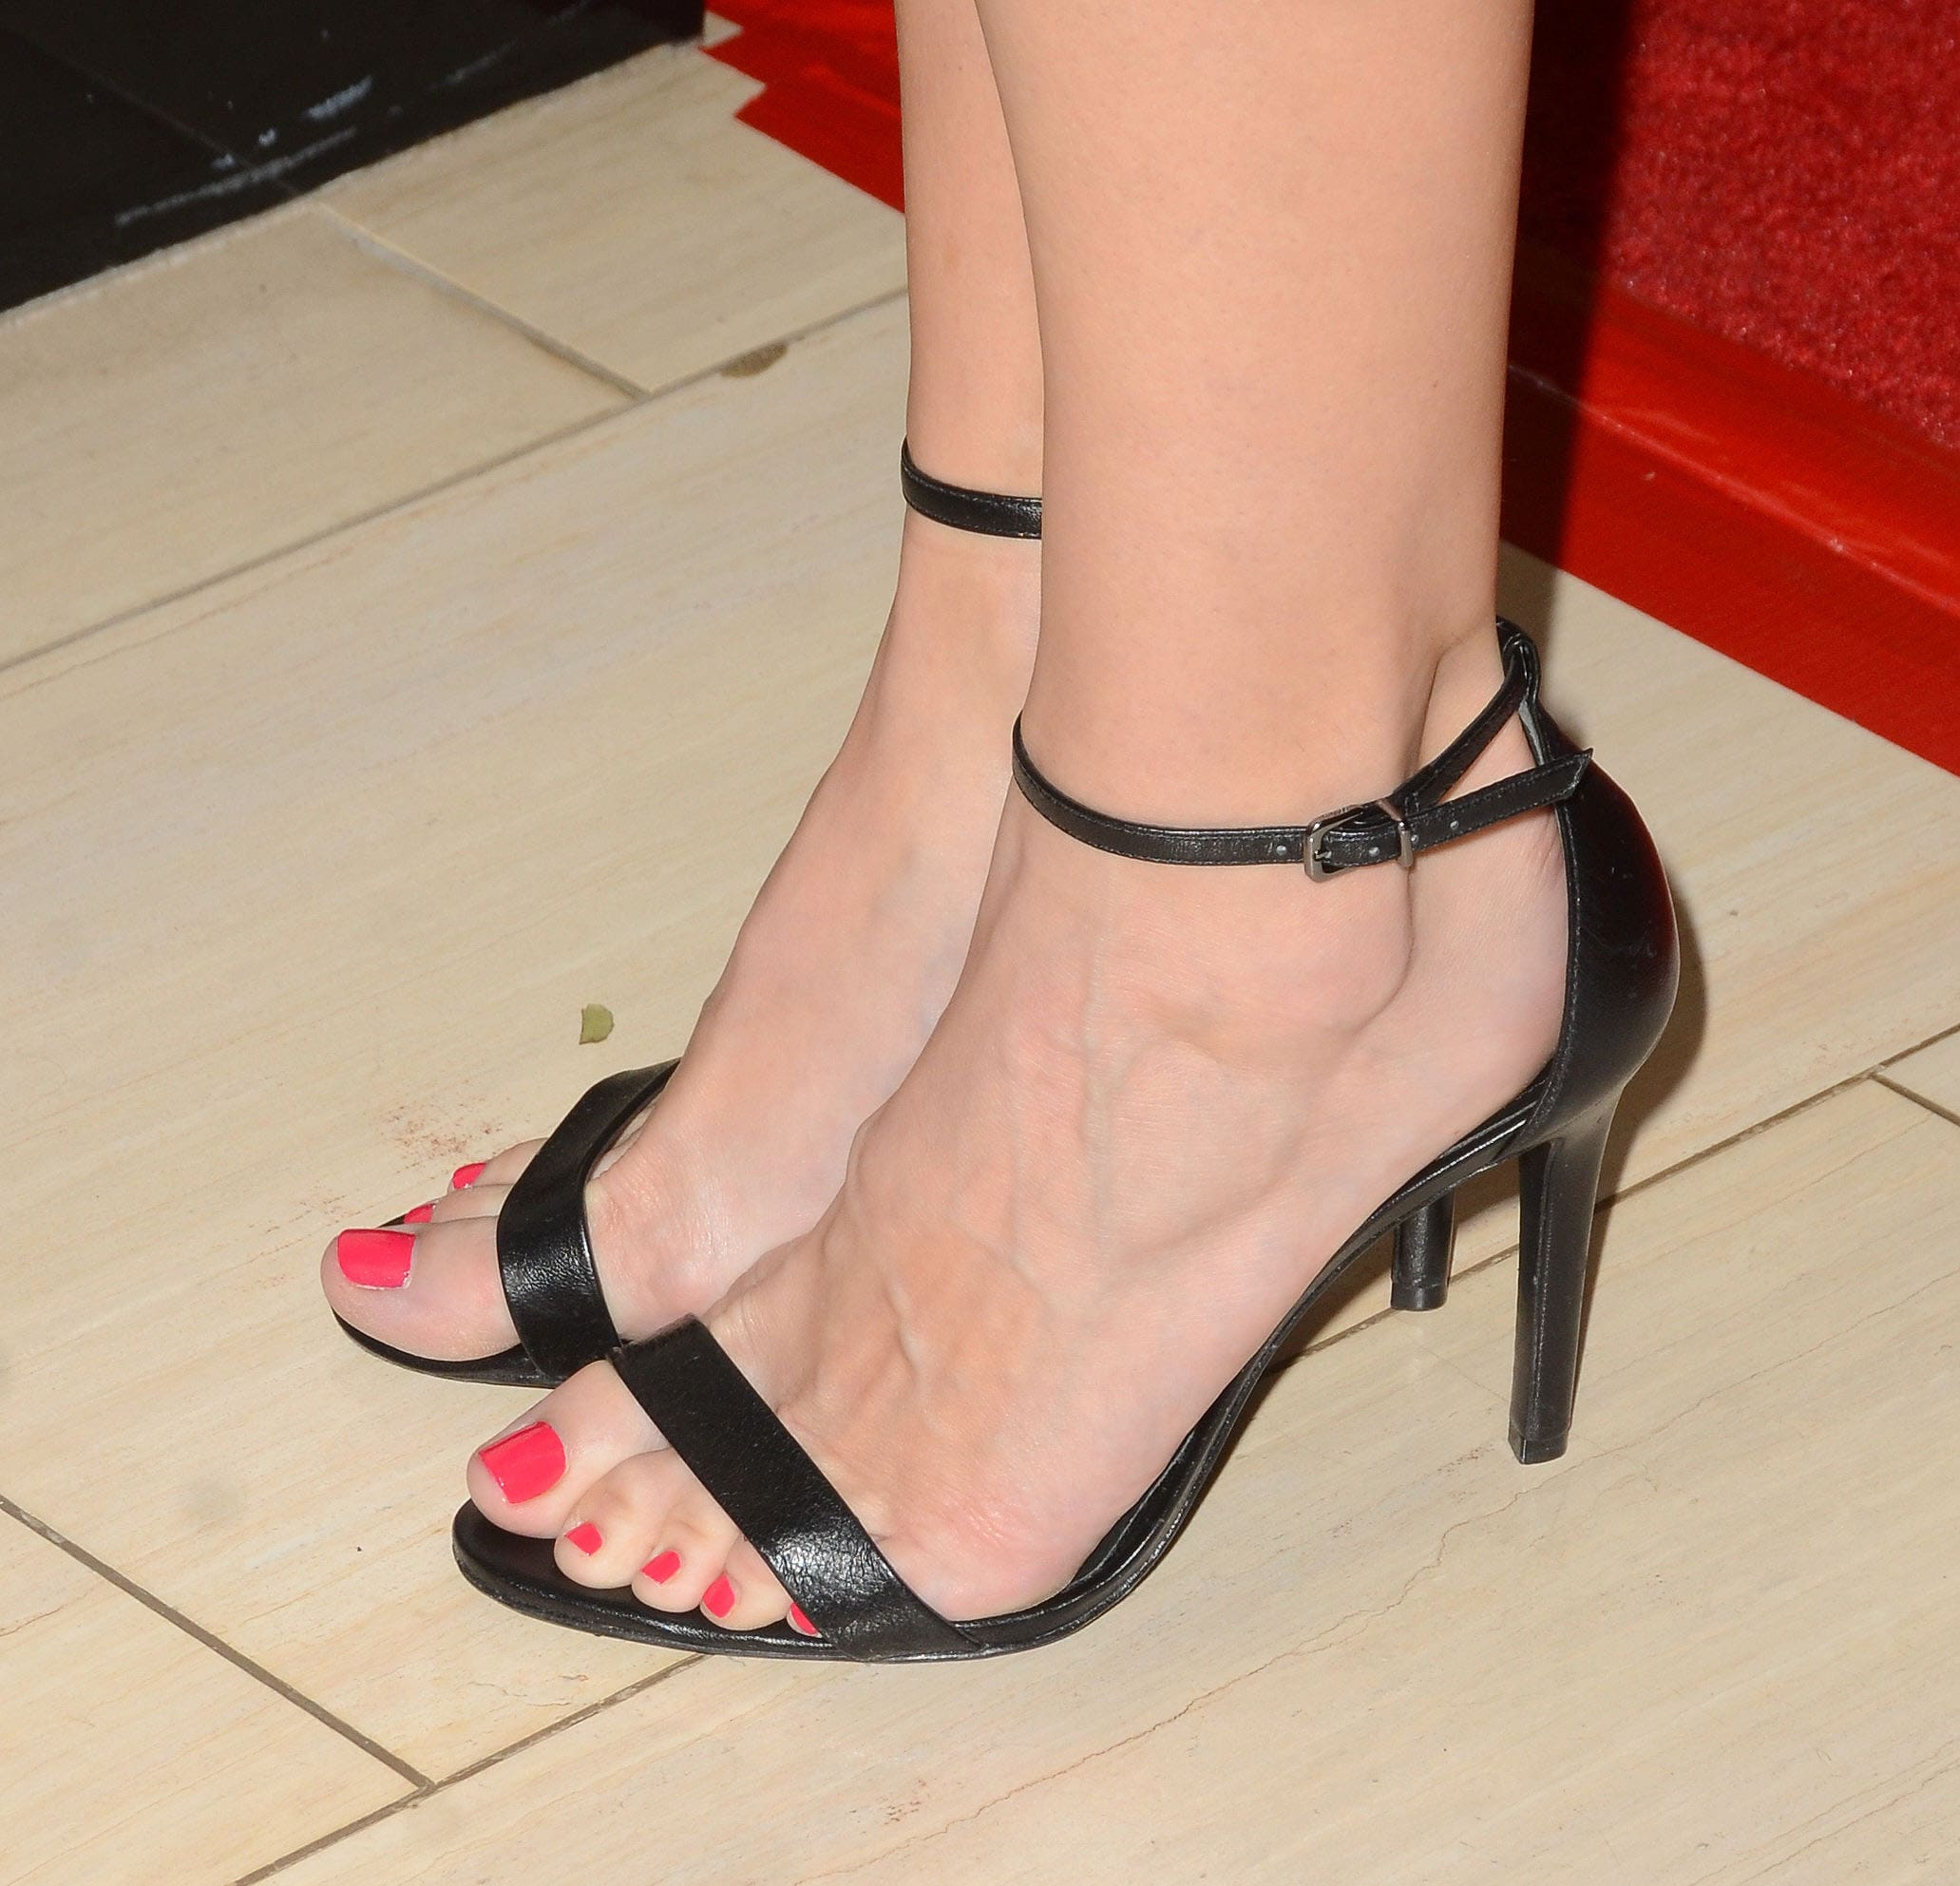 Danielle Panabaker hot toe nails